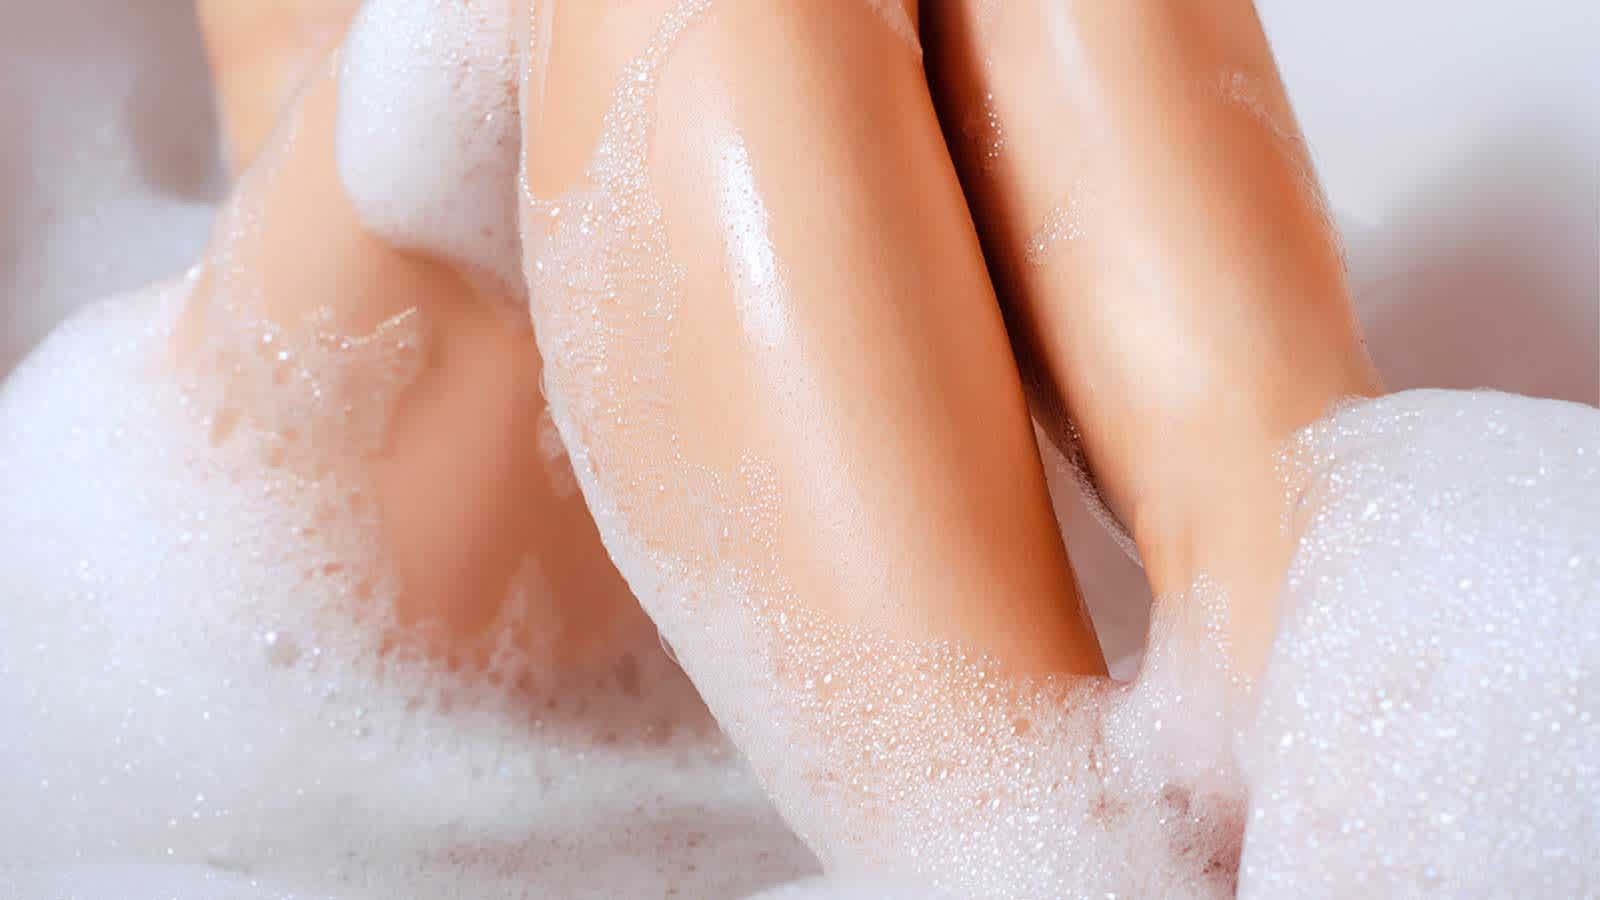 Taking a Warm Bath to Moisturize Skin Before Shaving